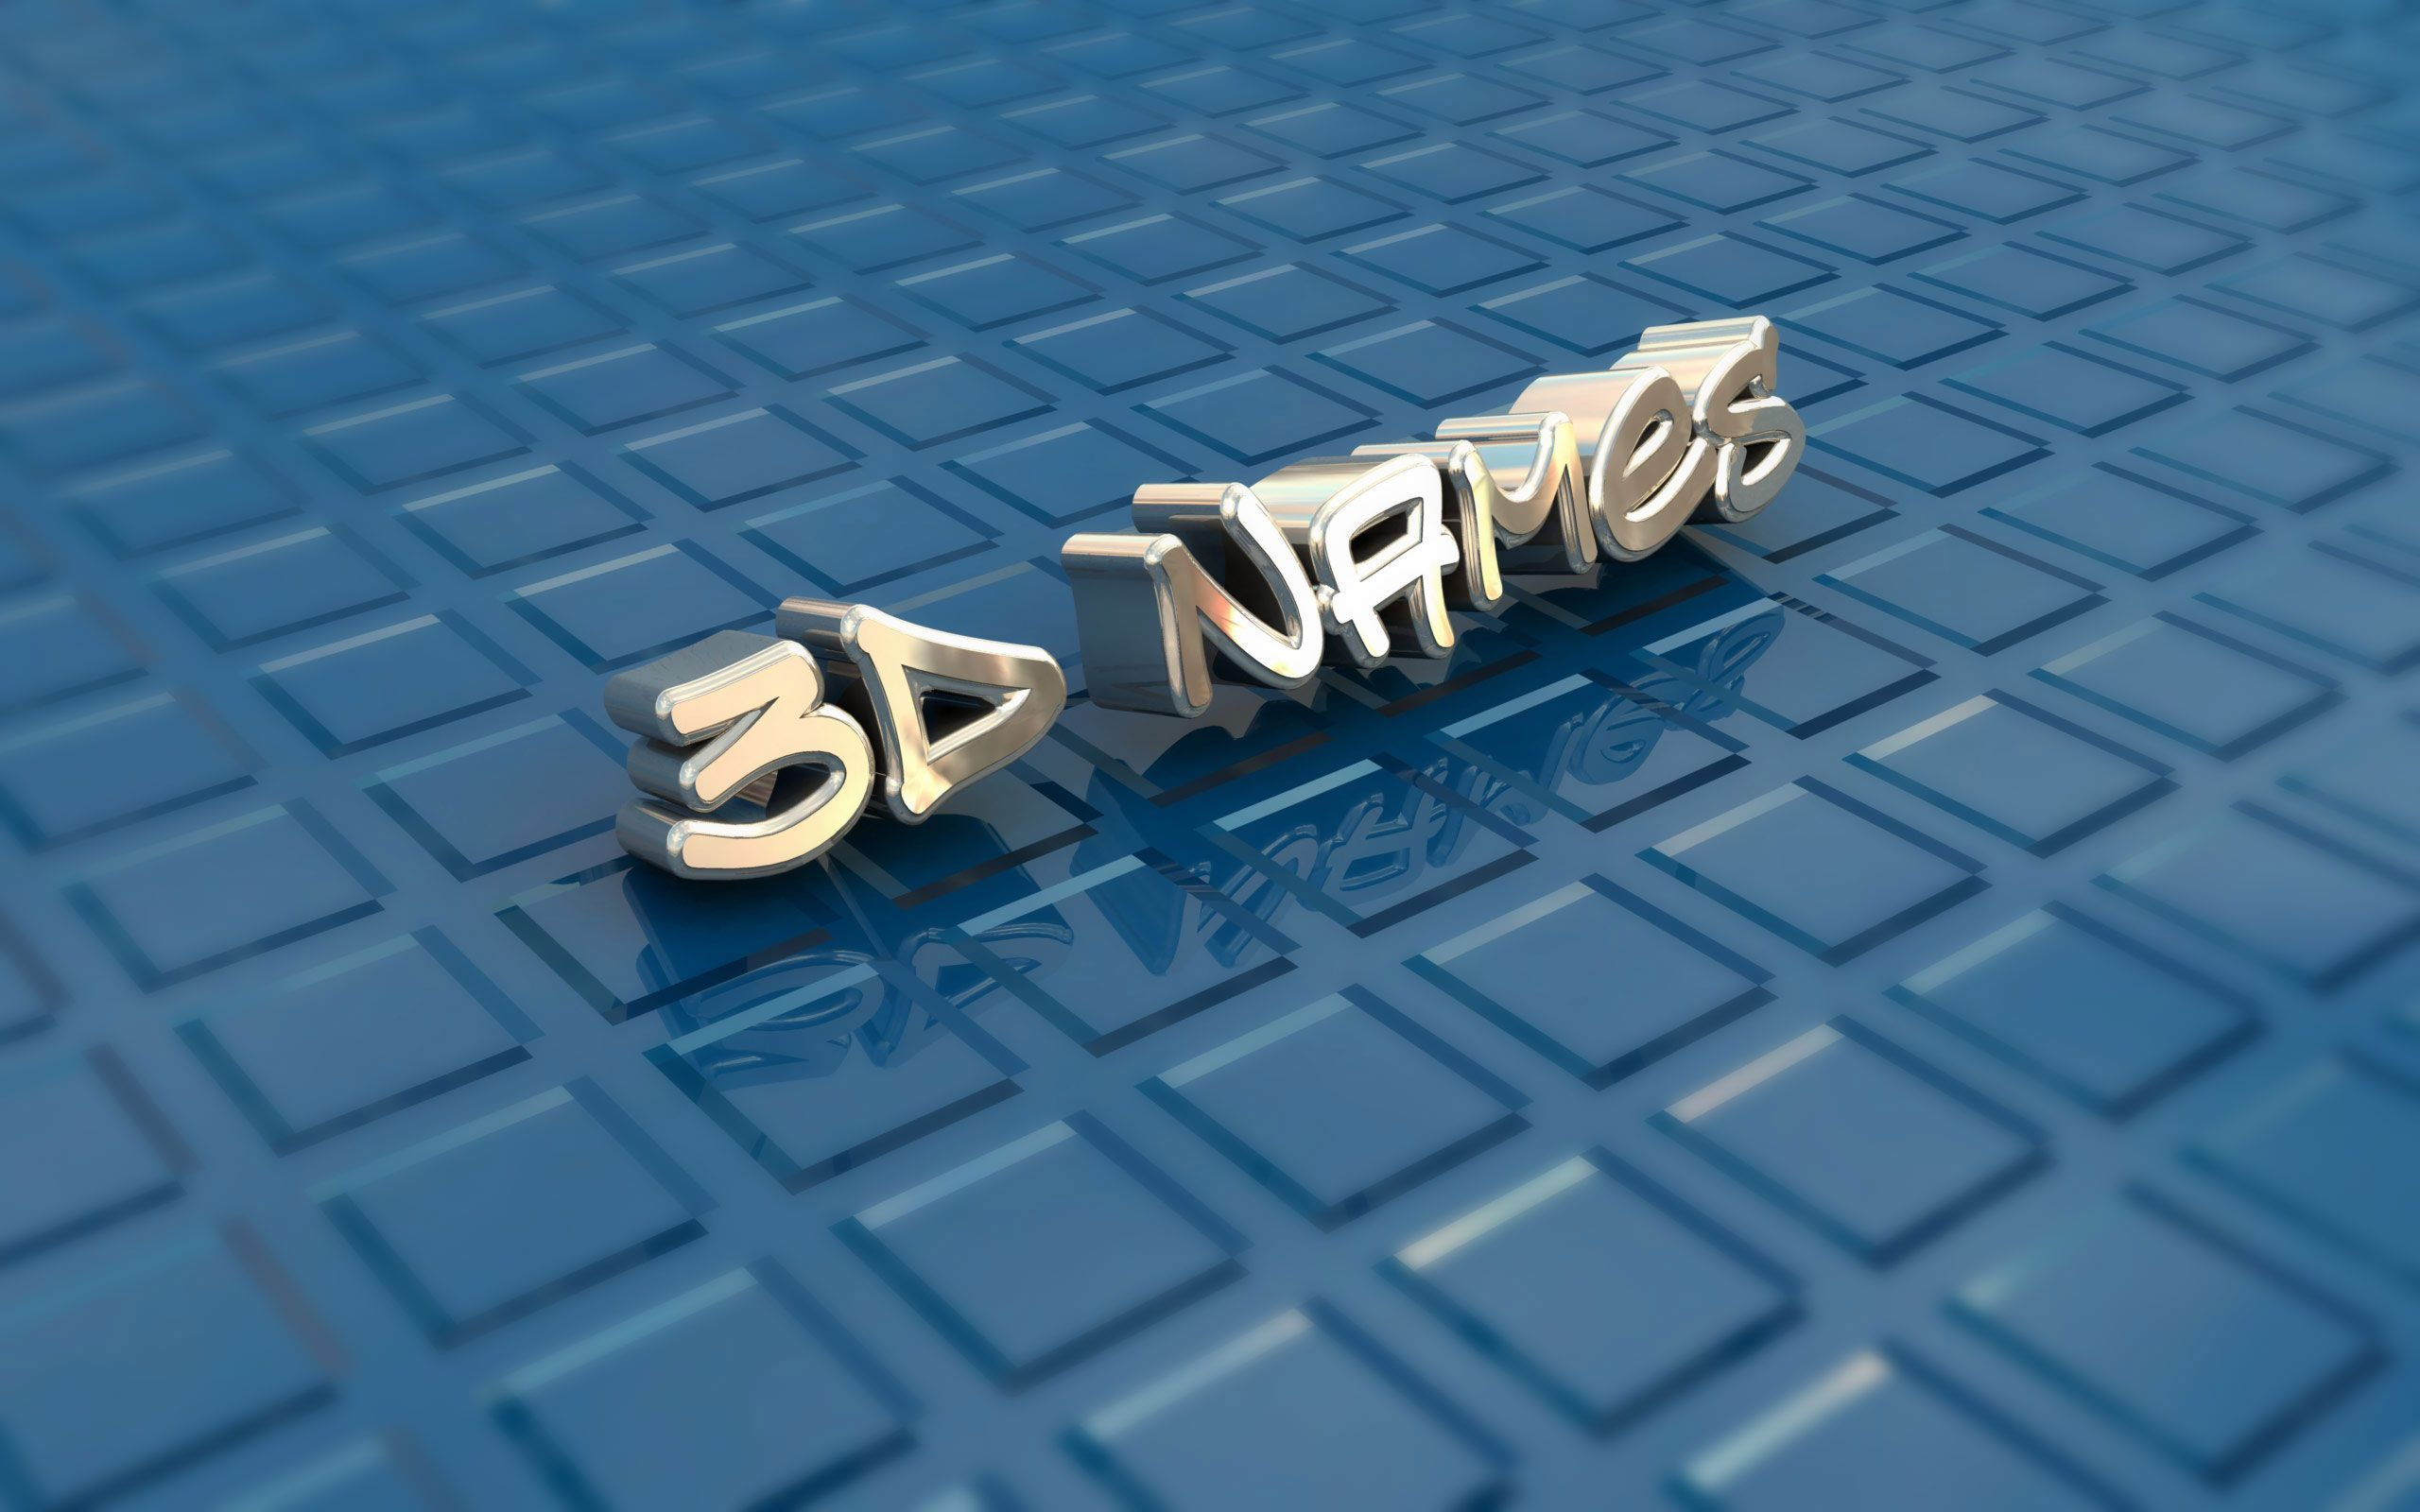 3D Wallpaper Name Download